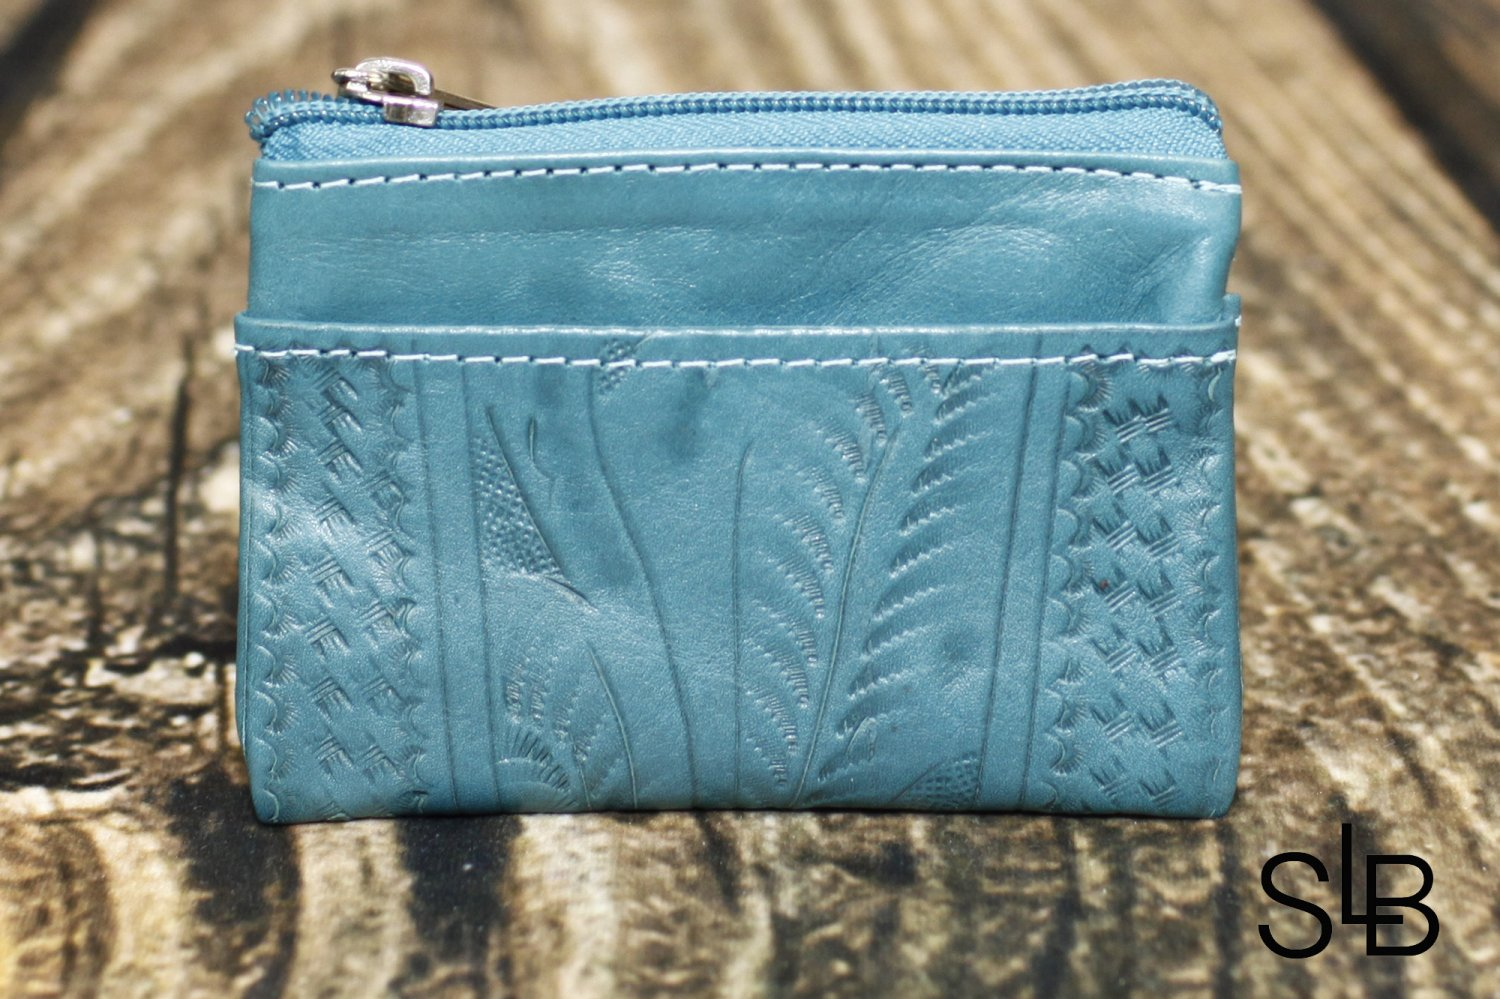 Ropin West turquoise Tooled Leather Coin Purse - RW967